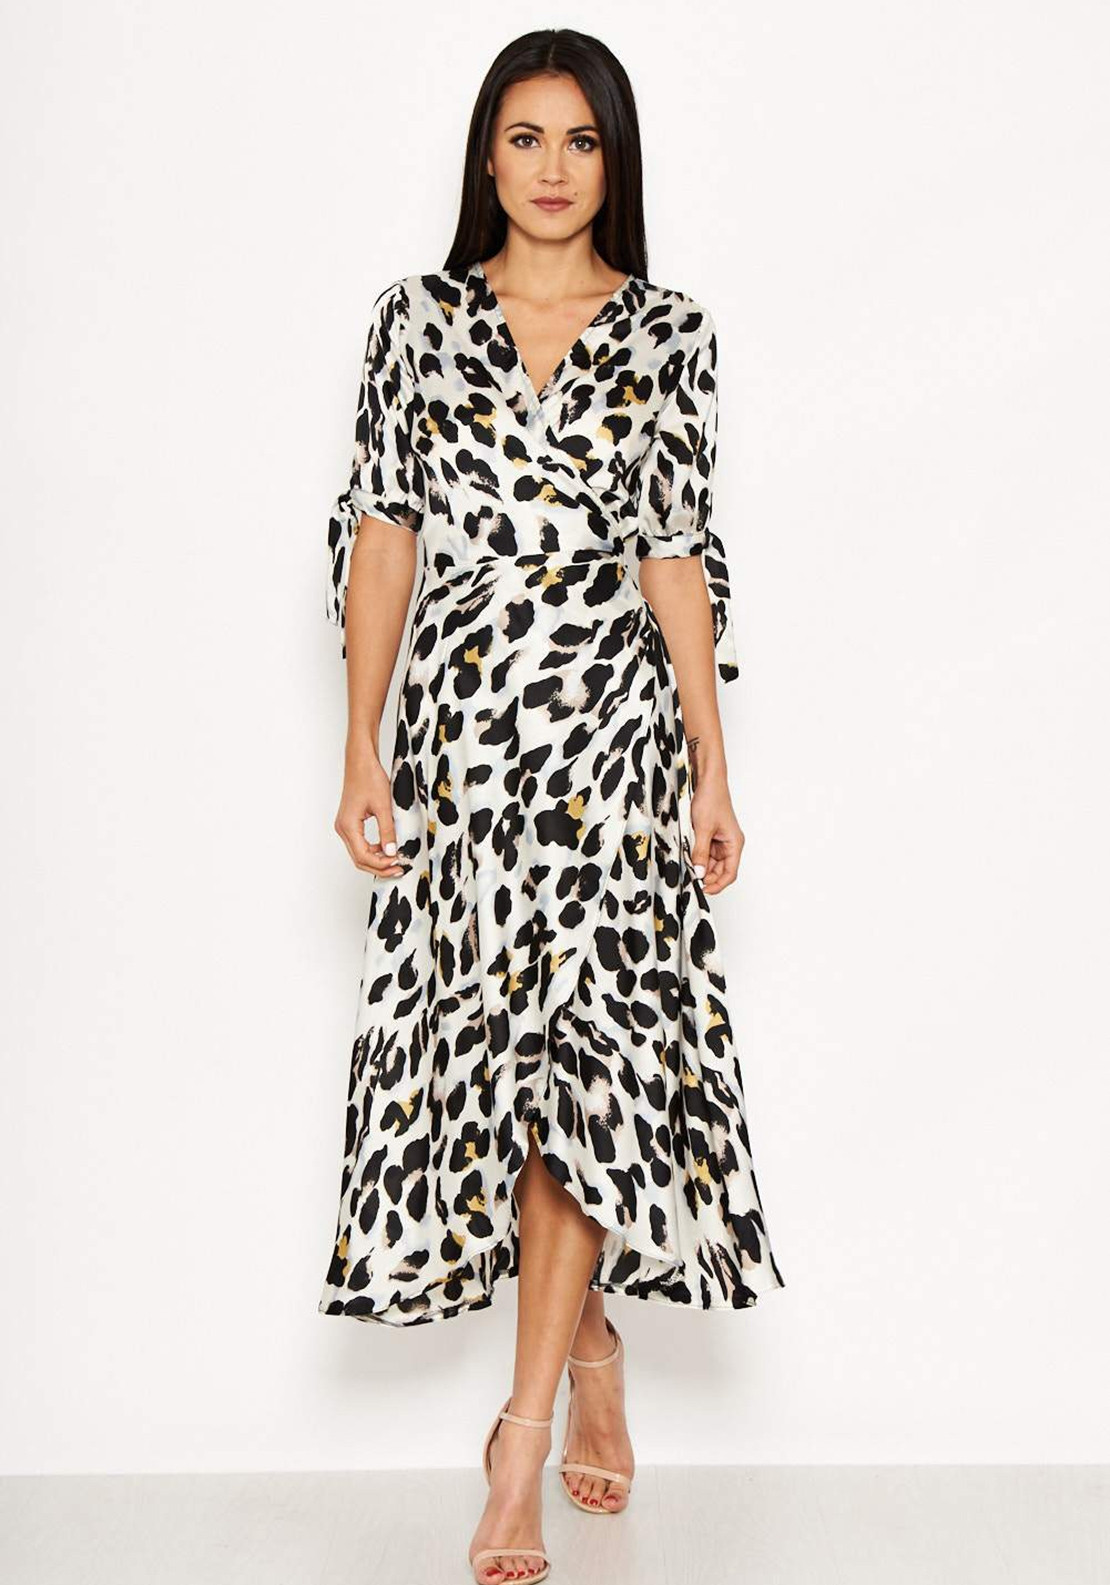 da983b9daf8e AX Paris Animal Print Wrap Dress, Cream. Be the first to review this product